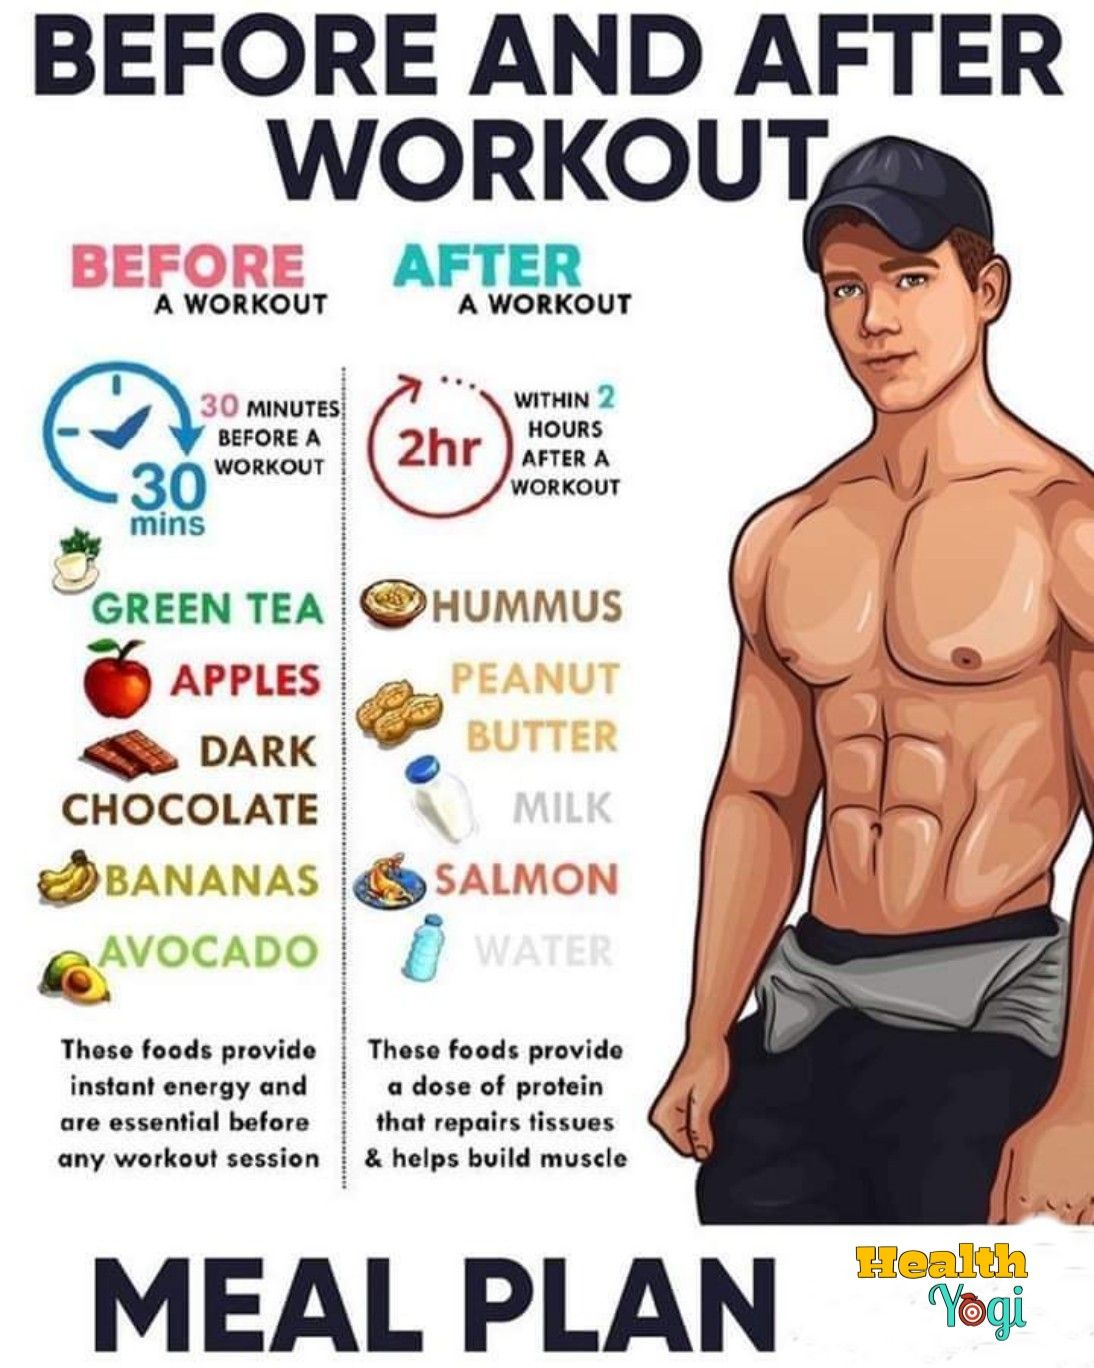 Pin On Health And Fitness Guide Tips Motivation